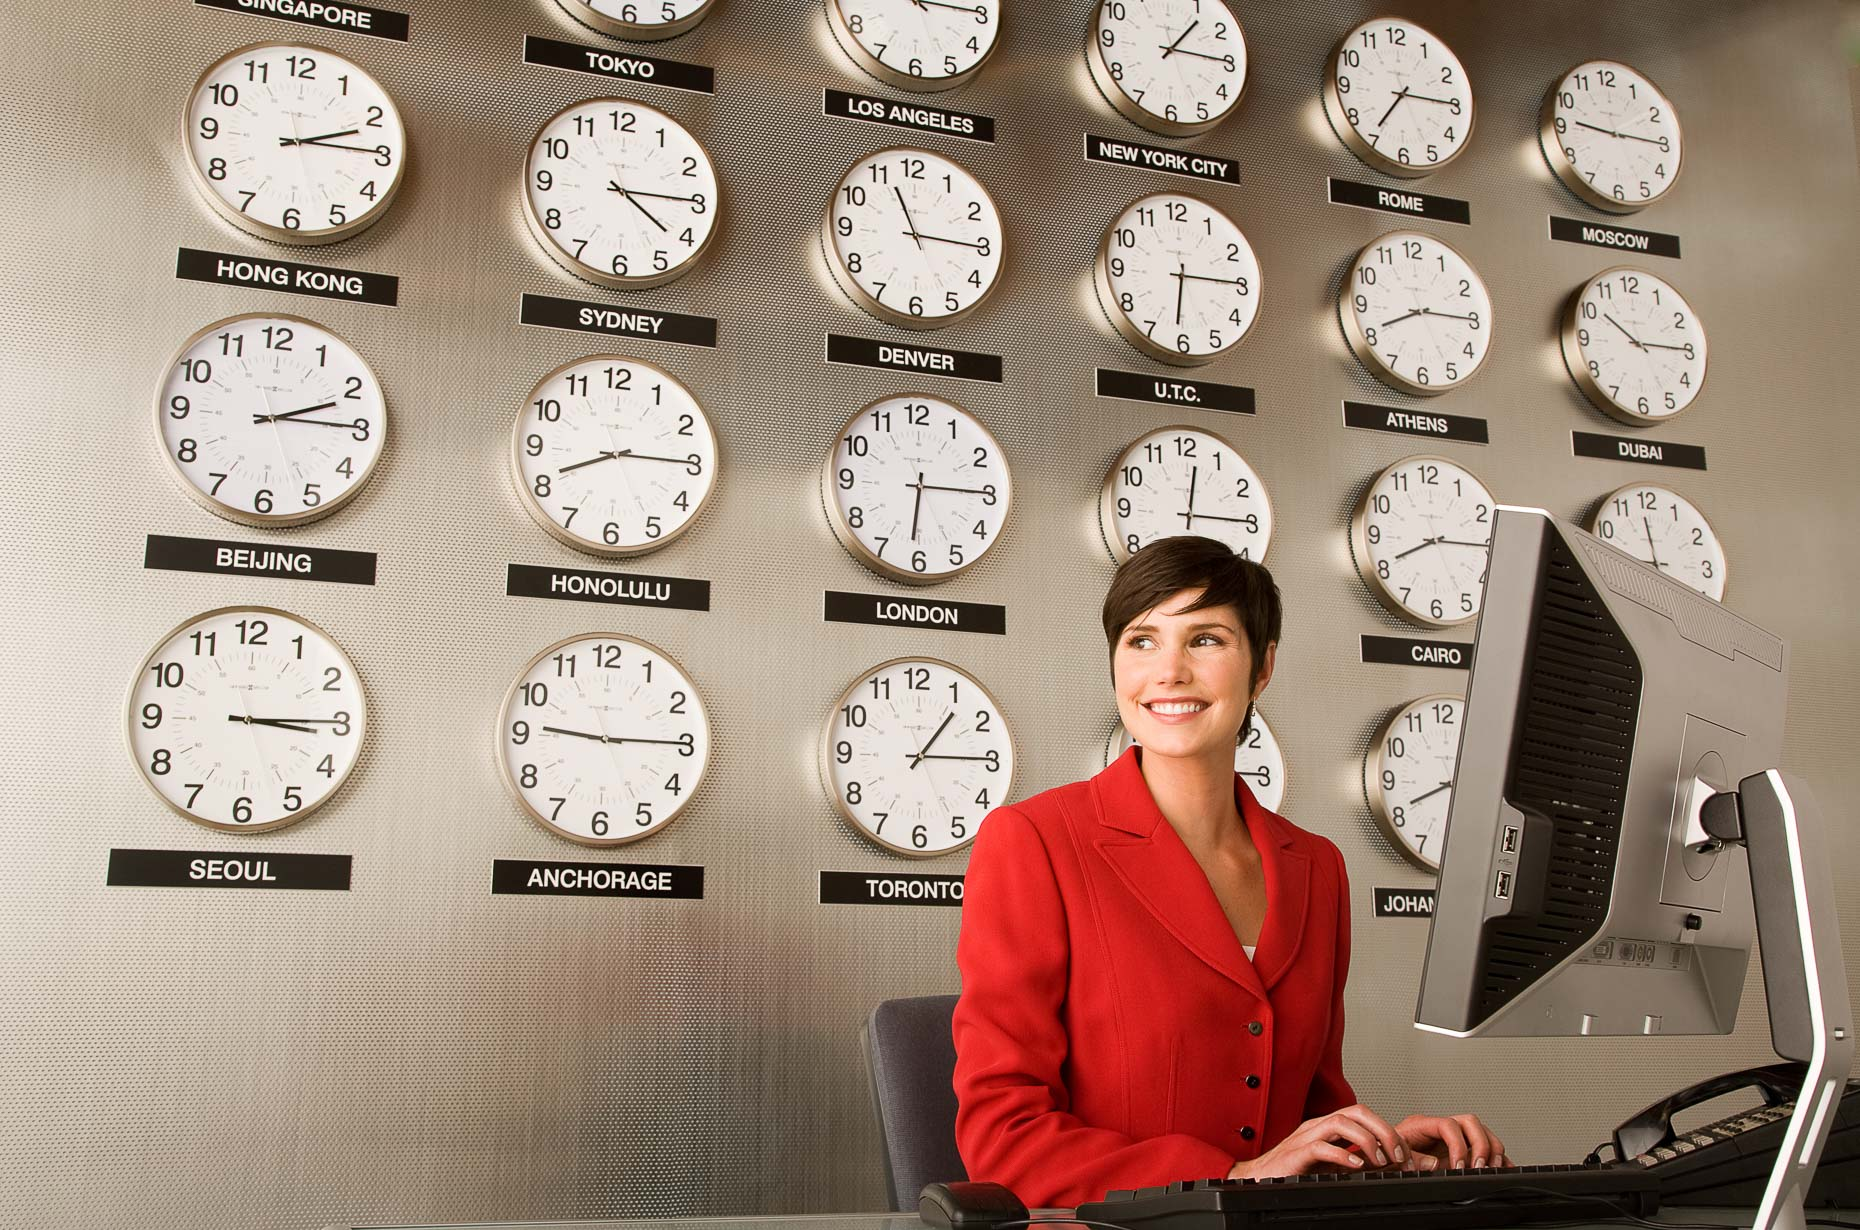 Woman working on computer in front of wall with many clocks with different international time zones by David Zaitz